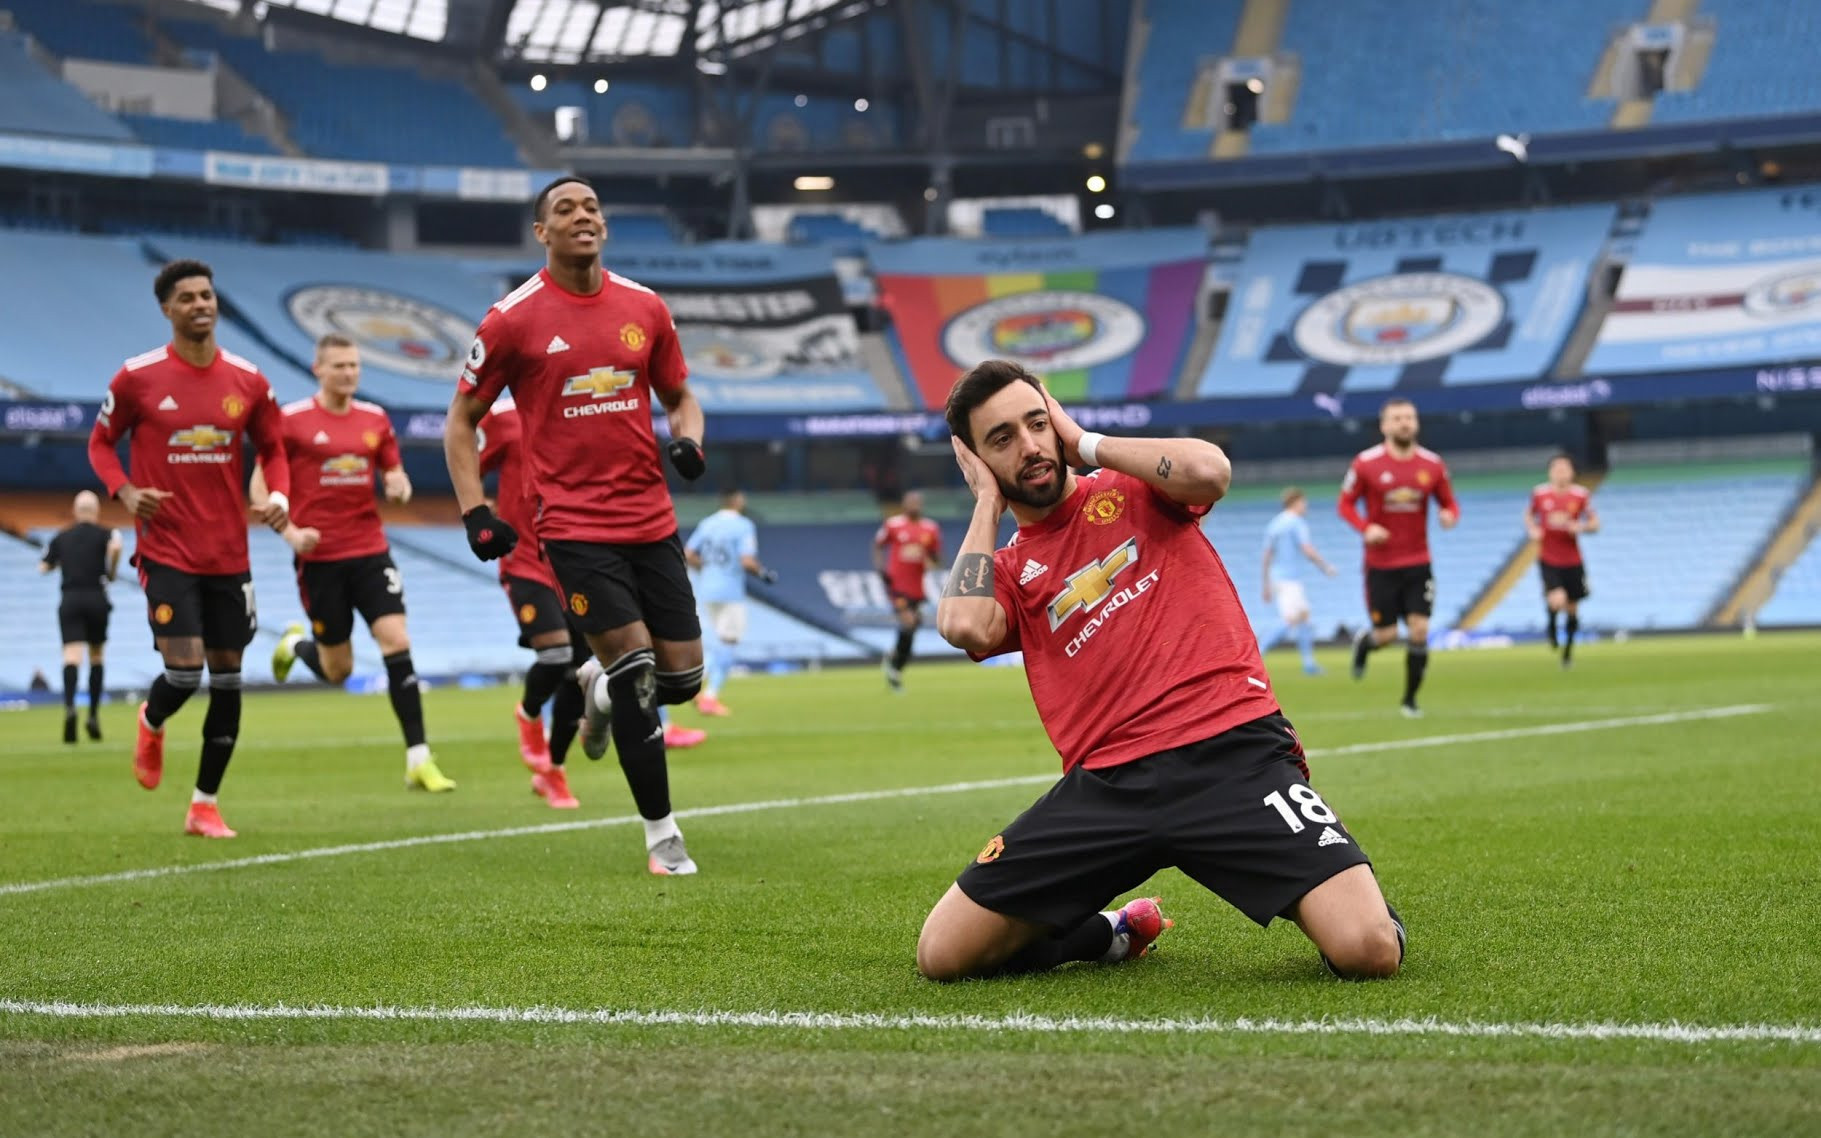 MANCHESTER CITY'S RUN OF 21 SUCCESSIVE VICTORIES IS OVER AS MANCHESTER UNITED BEAT THEM 2-0 AT THE ETIHAD